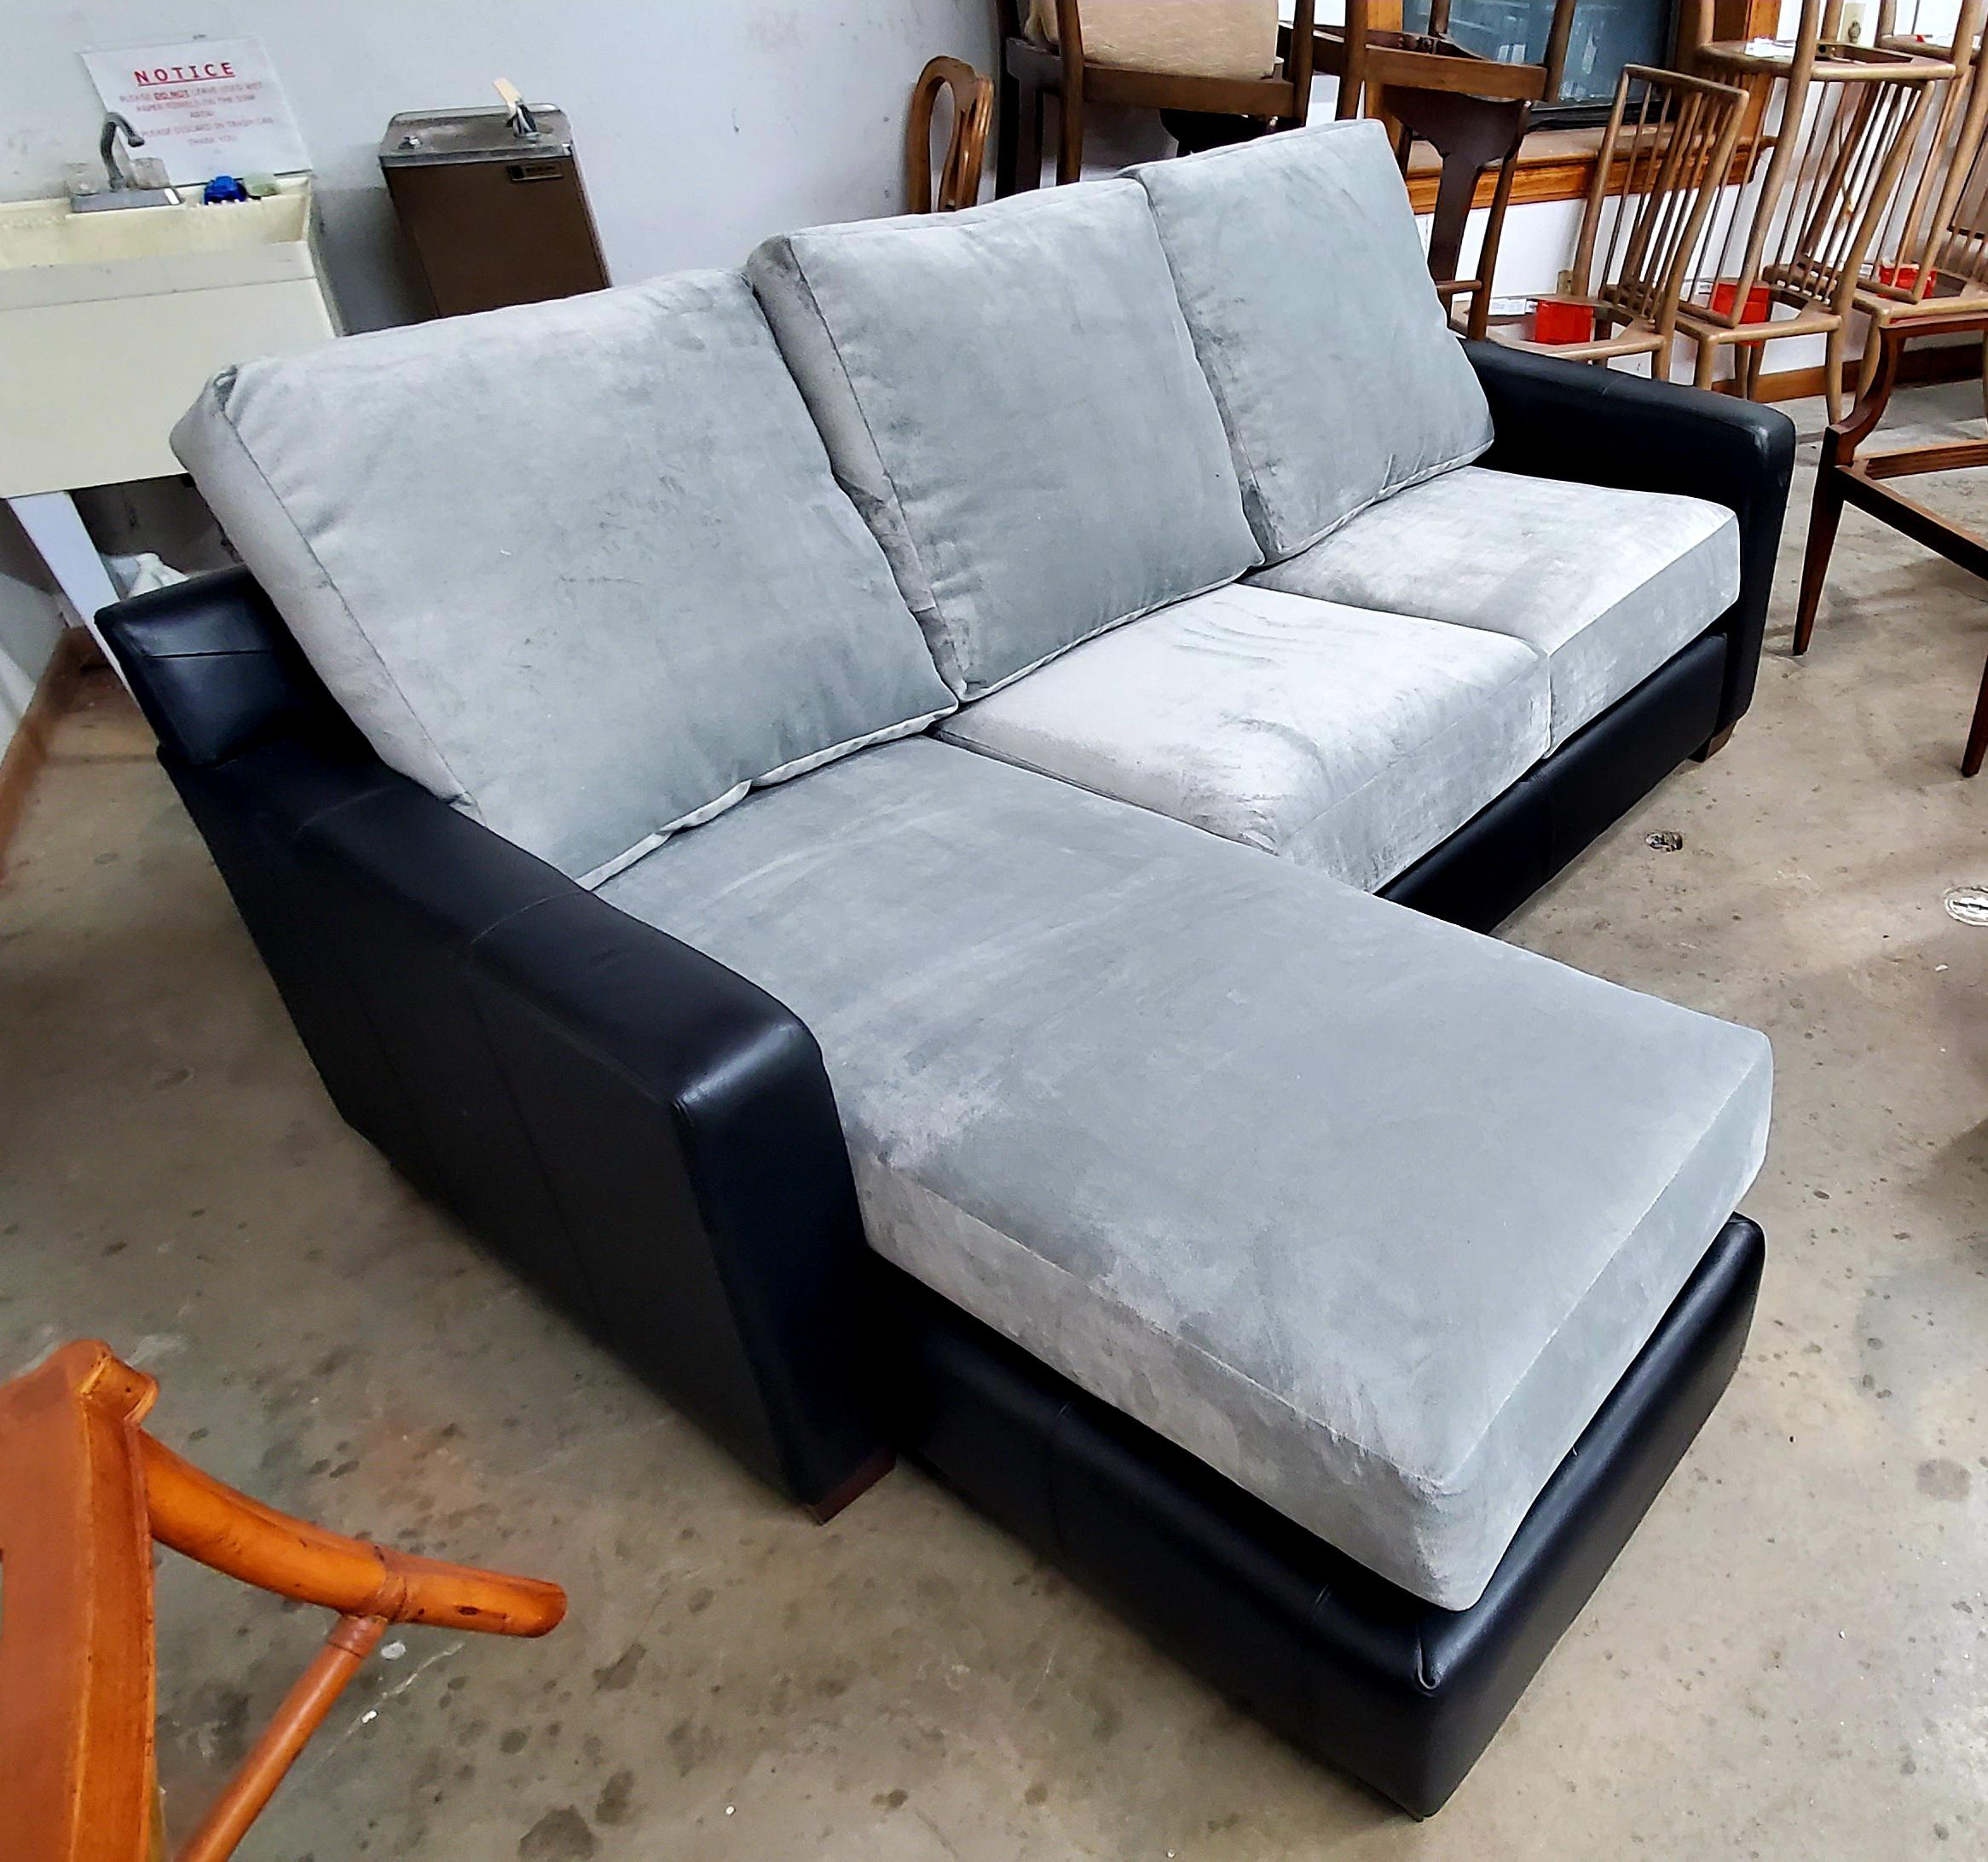 thomasville furniture black leather and grey velvet sofa sectional w chaise